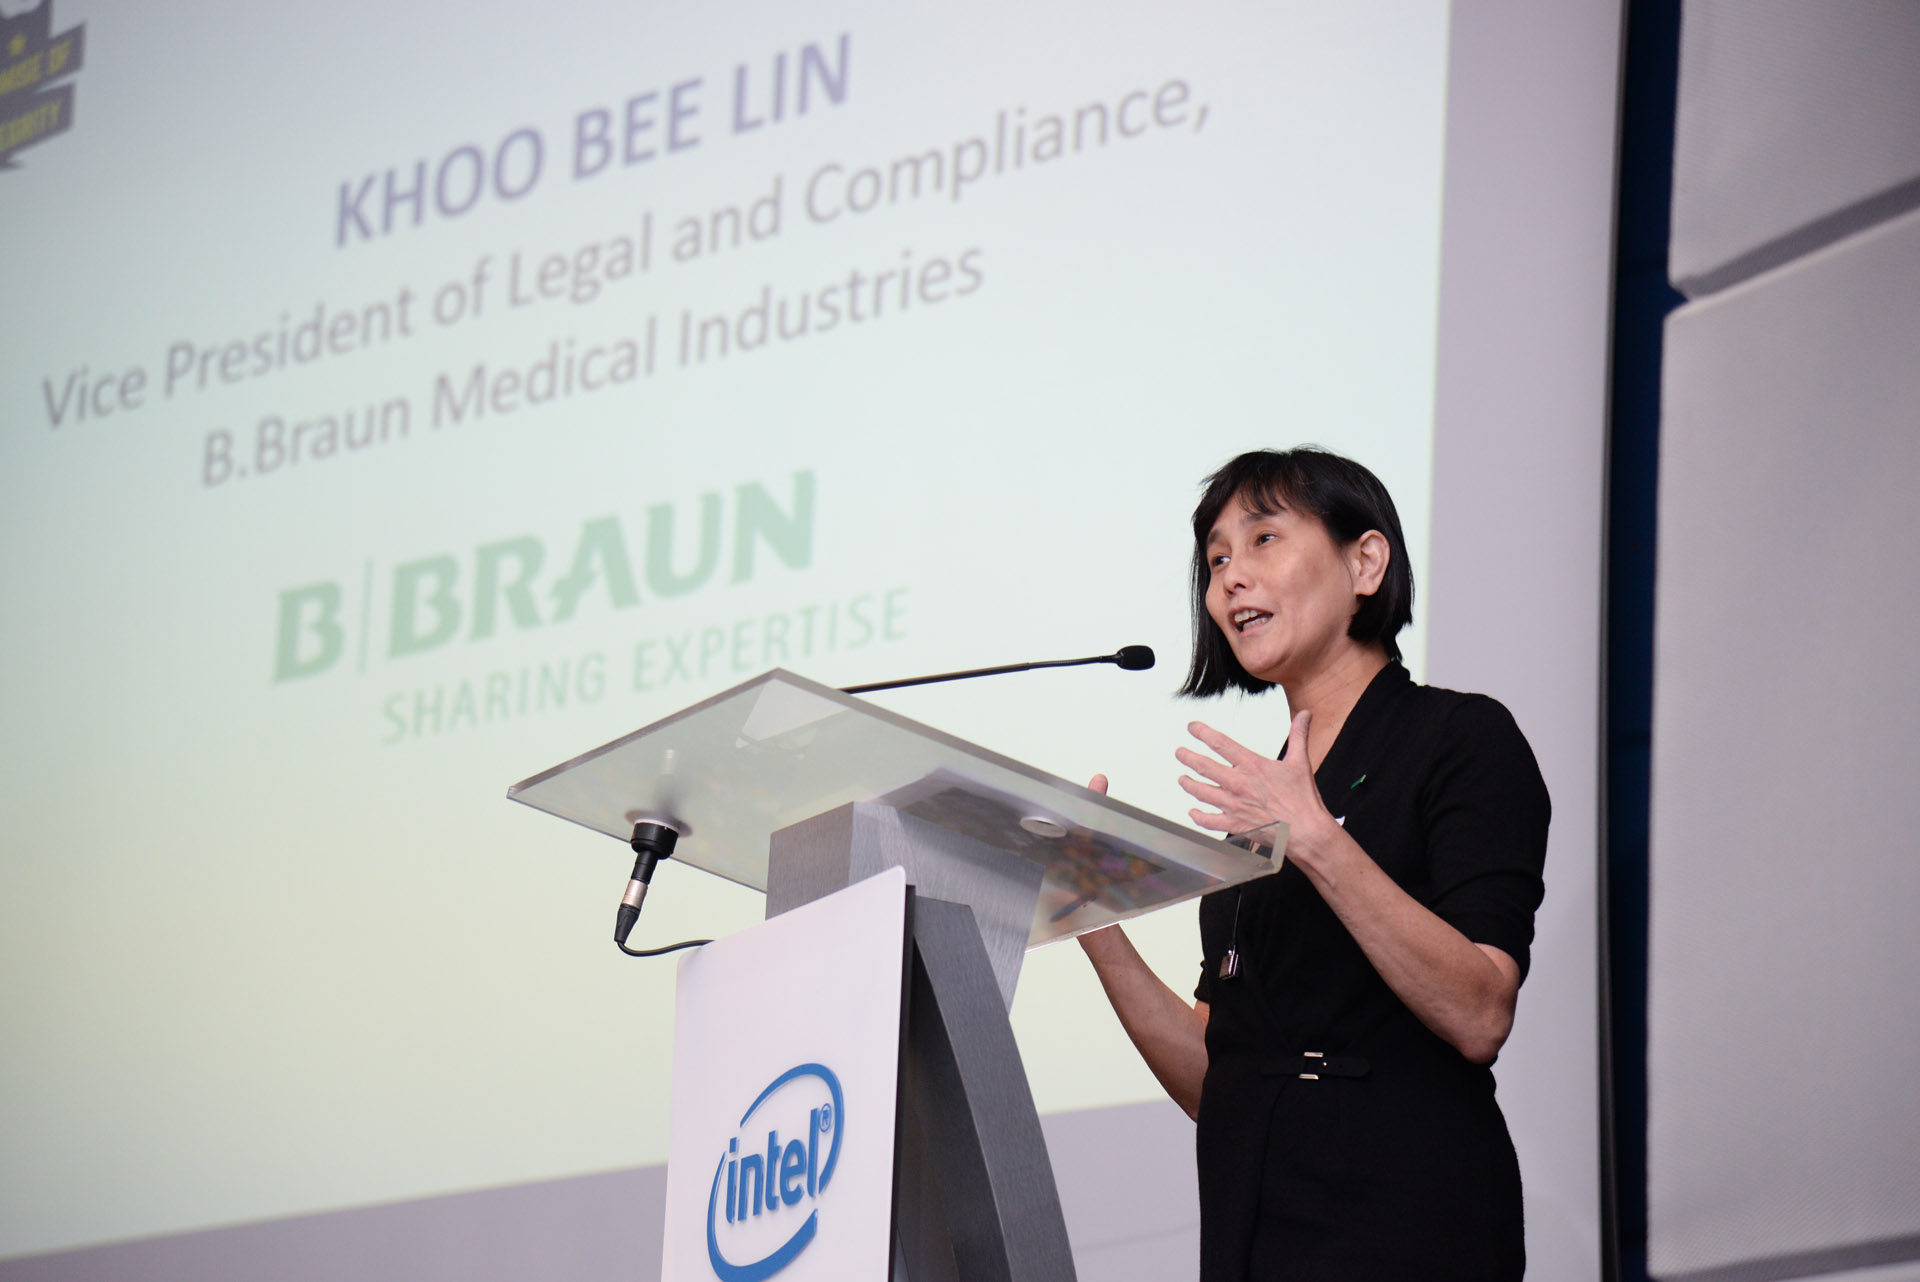 Ms Khoo Bee Lin, VP of Legal and Compliance, B.Braun Medical Industries delivering her presentation